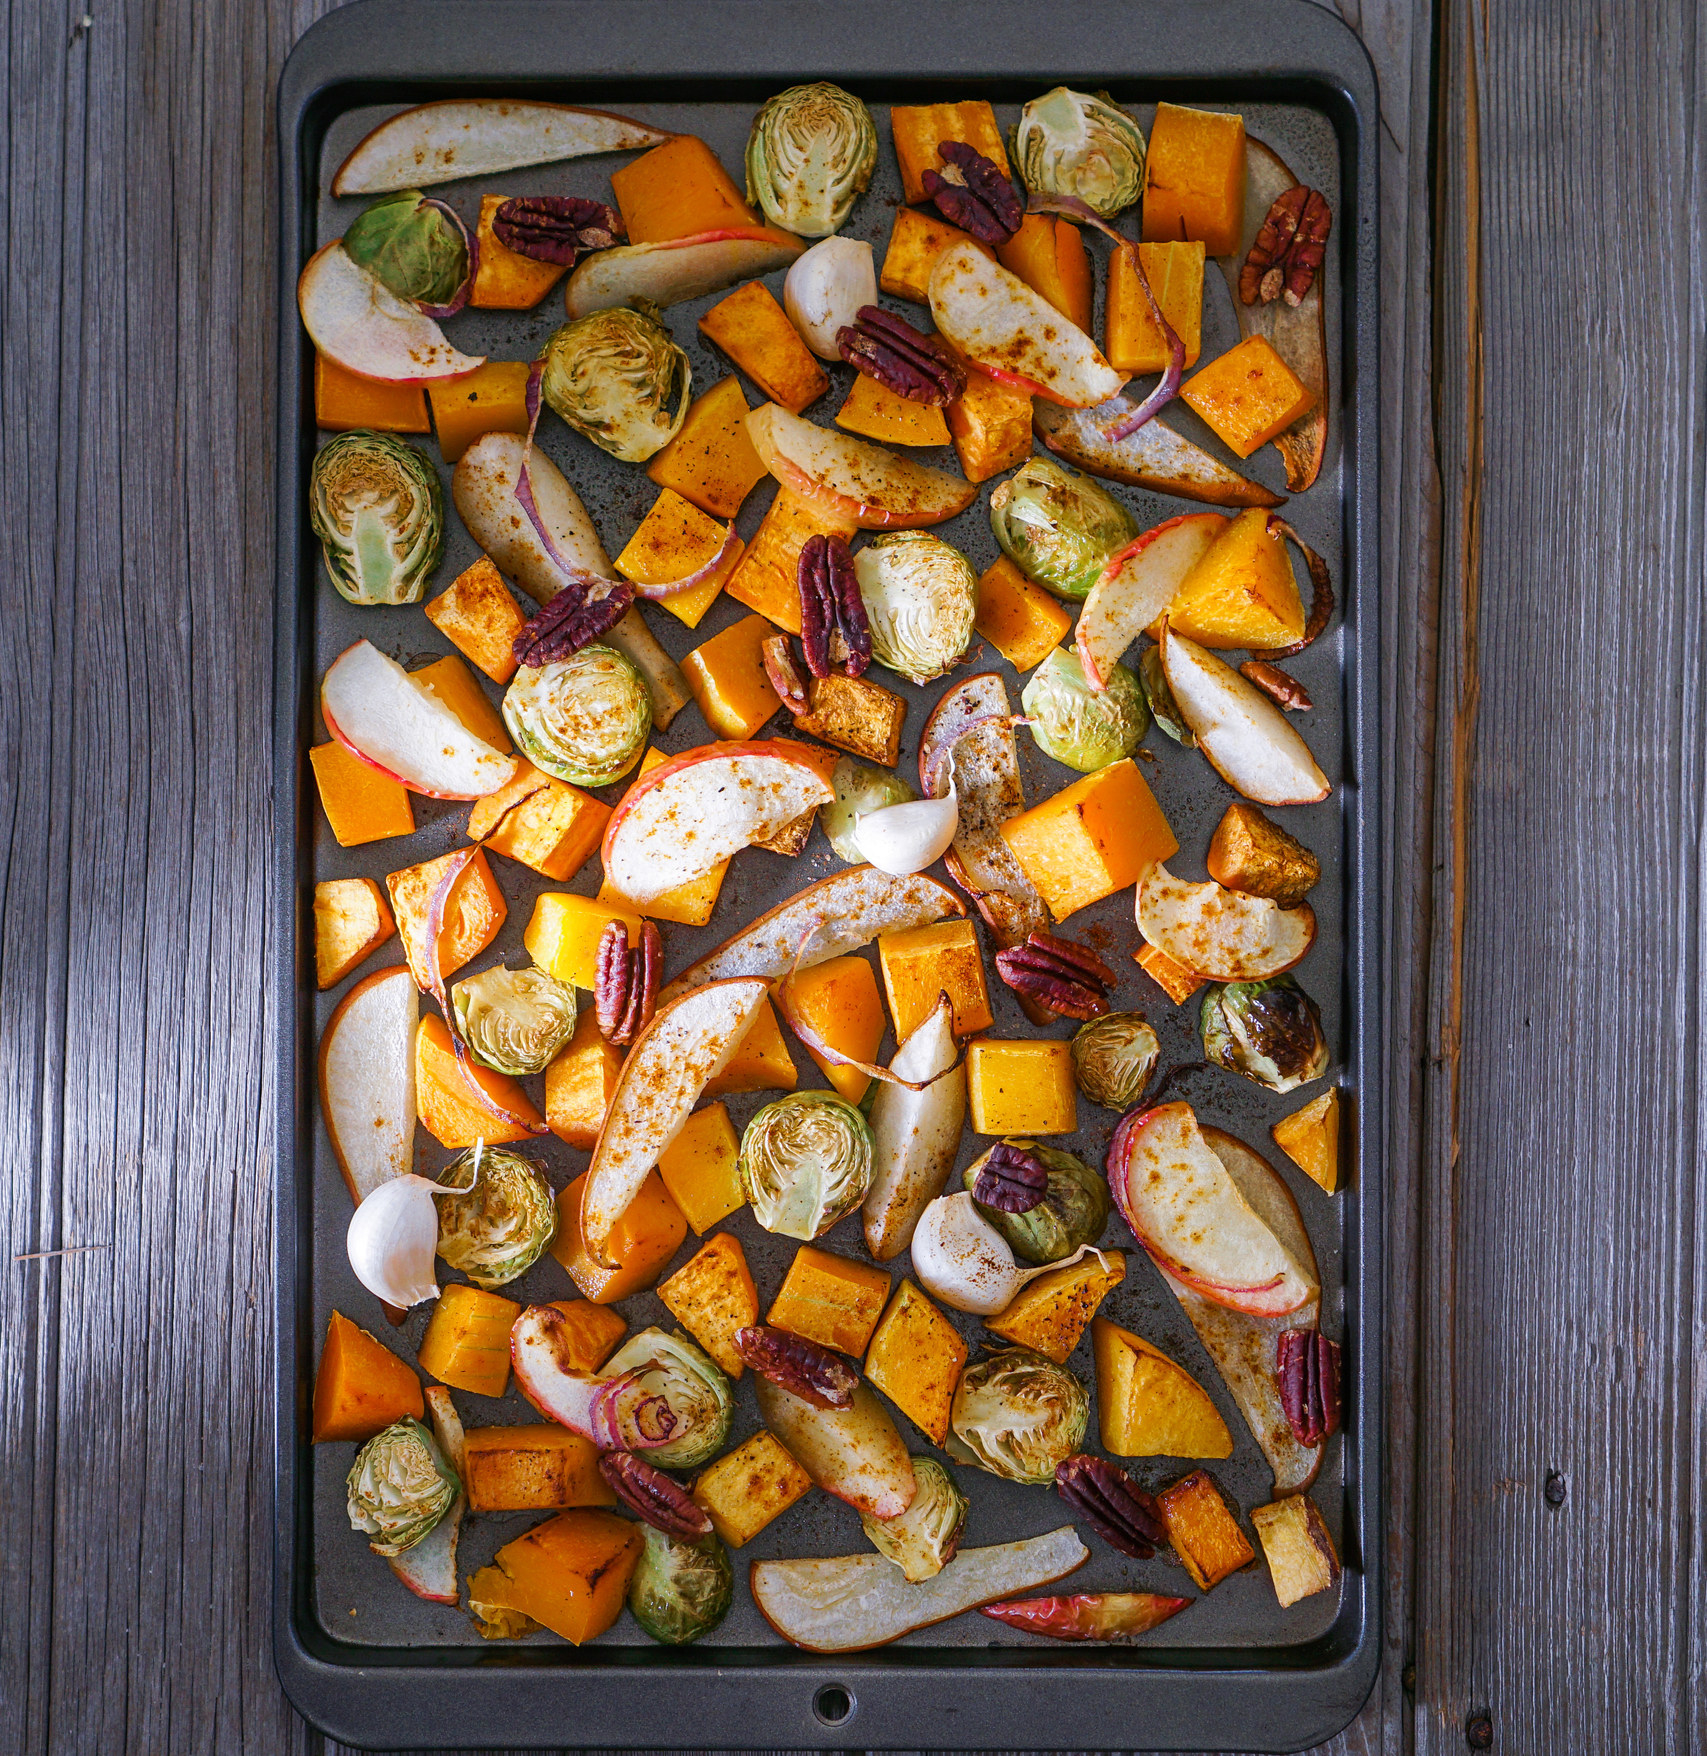 Roasted fruits and vegetables like butternut squash, Brussels sprouts, and sliced apples on a baking sheet.